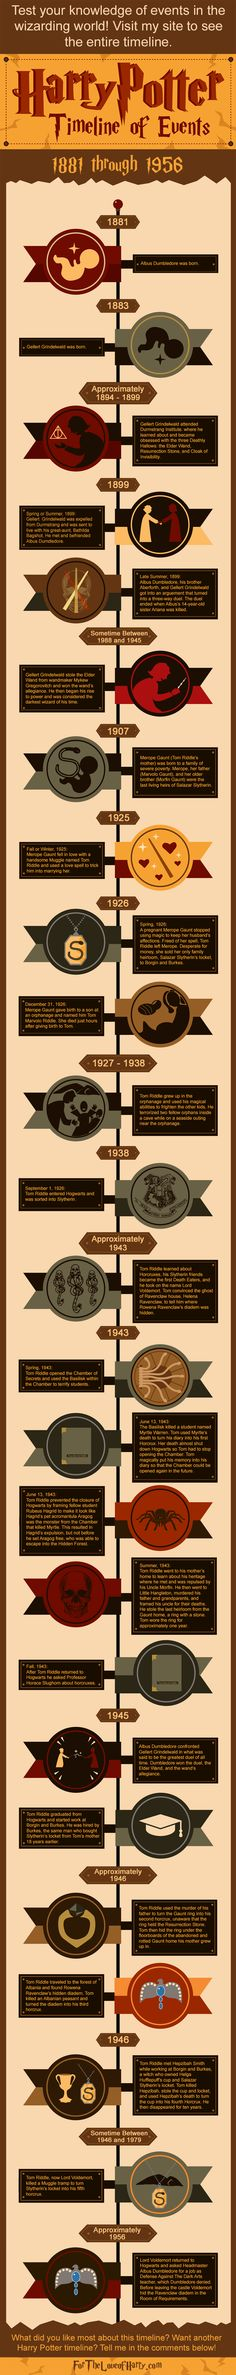 Darks Arts Infographic